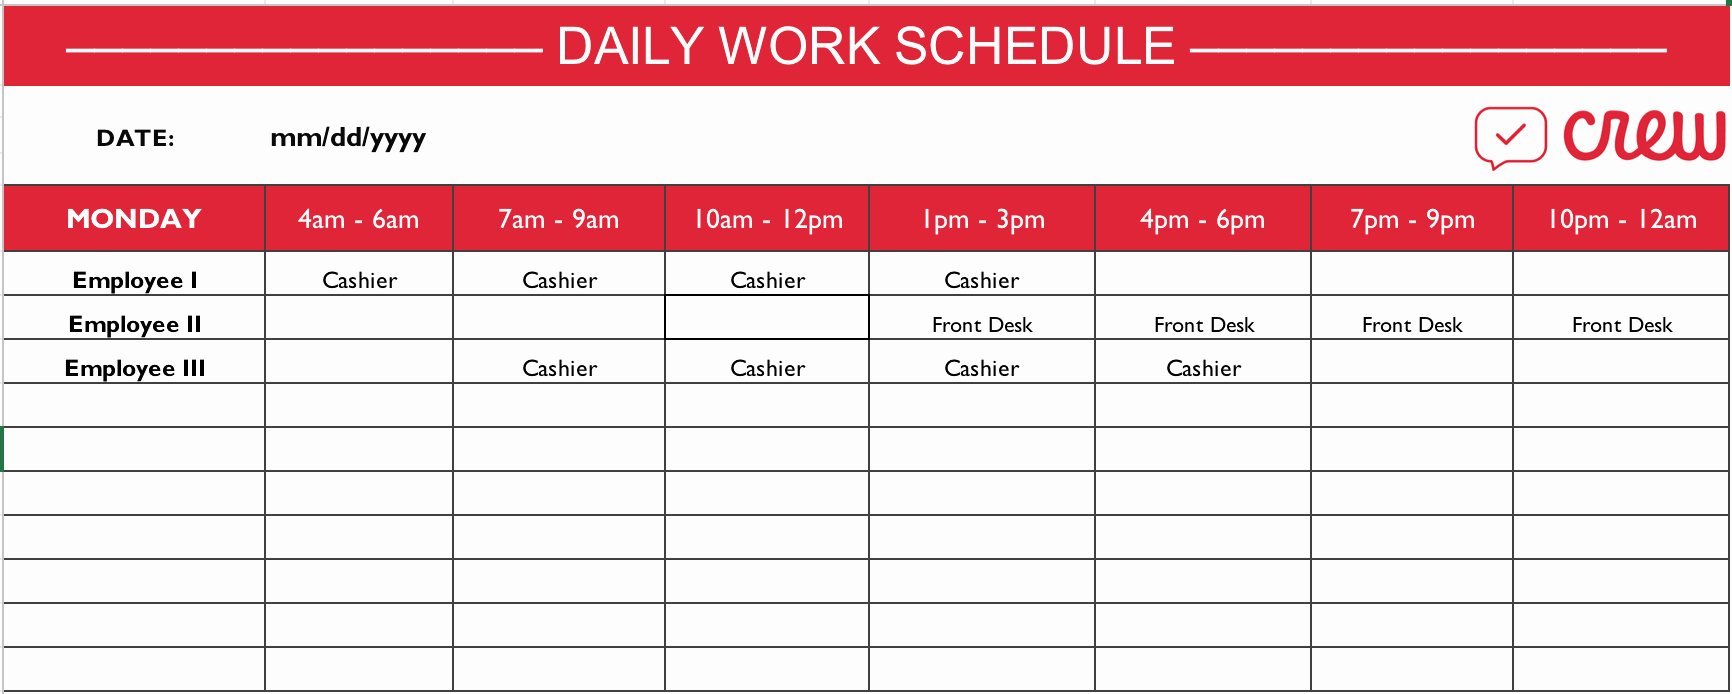 Weekly Work Schedule Template Free Awesome Employee Schedule Templates Example Of Spreadshee Employee